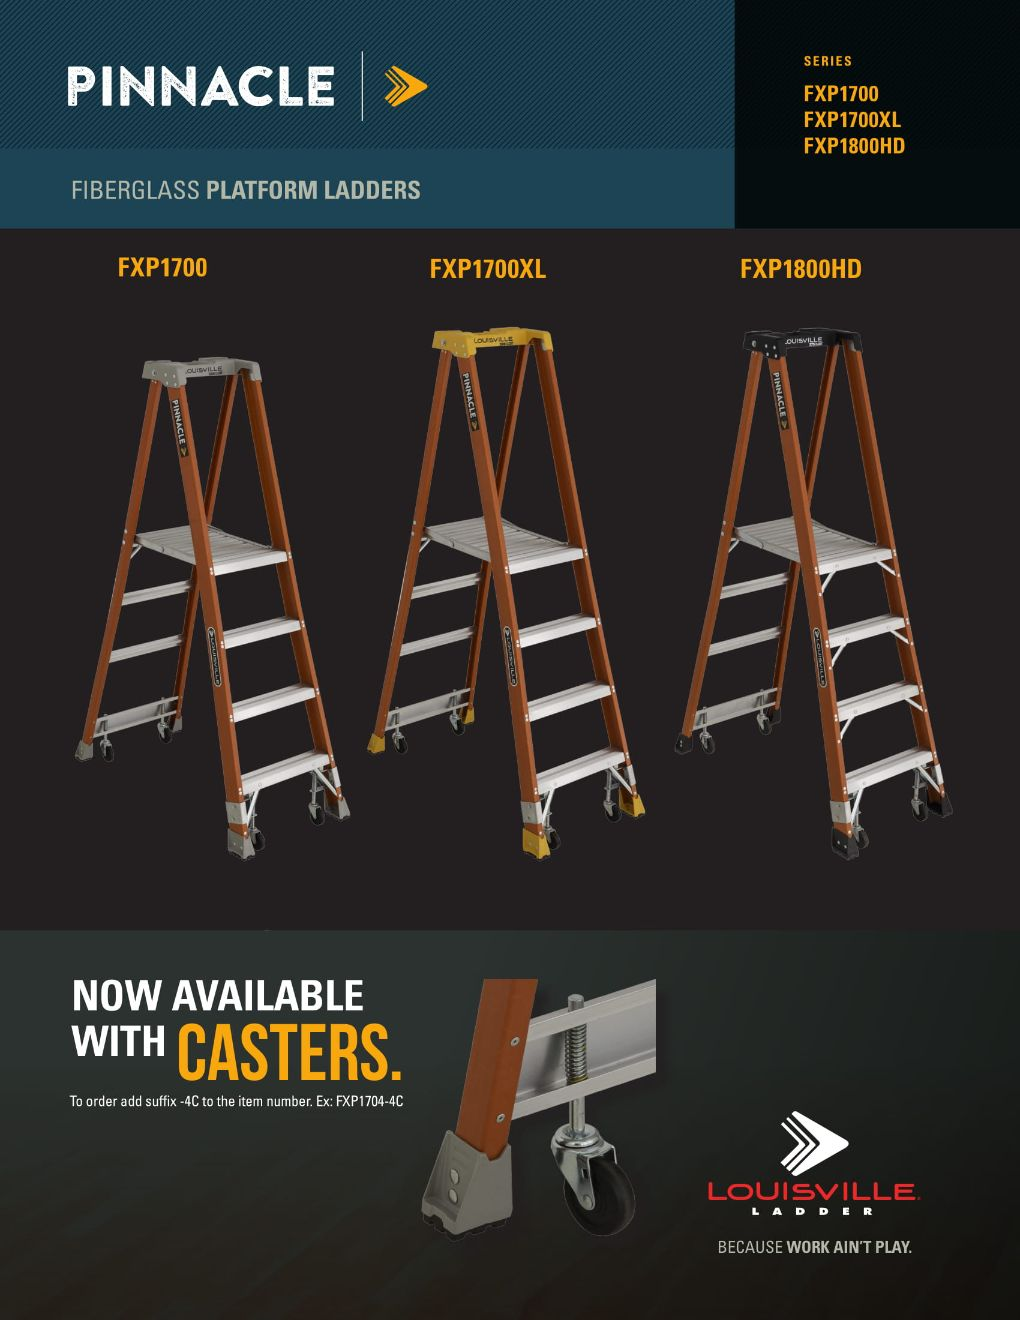 Pinnacle Casters - Flyer Marketing Material Image